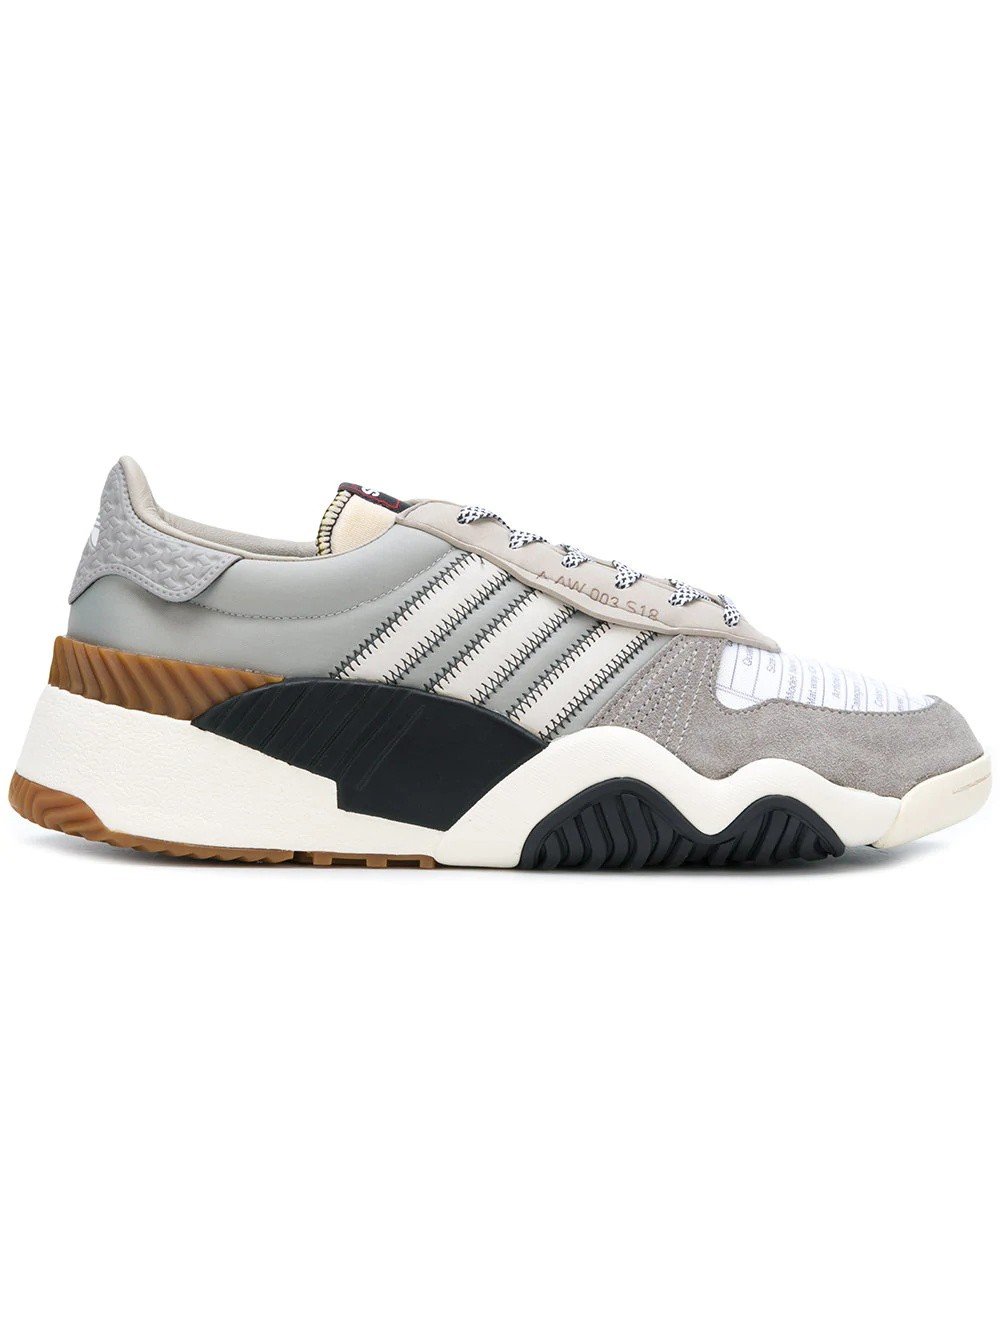 Adidas Originals by Alexander Wang Trainer B43589 Marron/Blanche/Noir